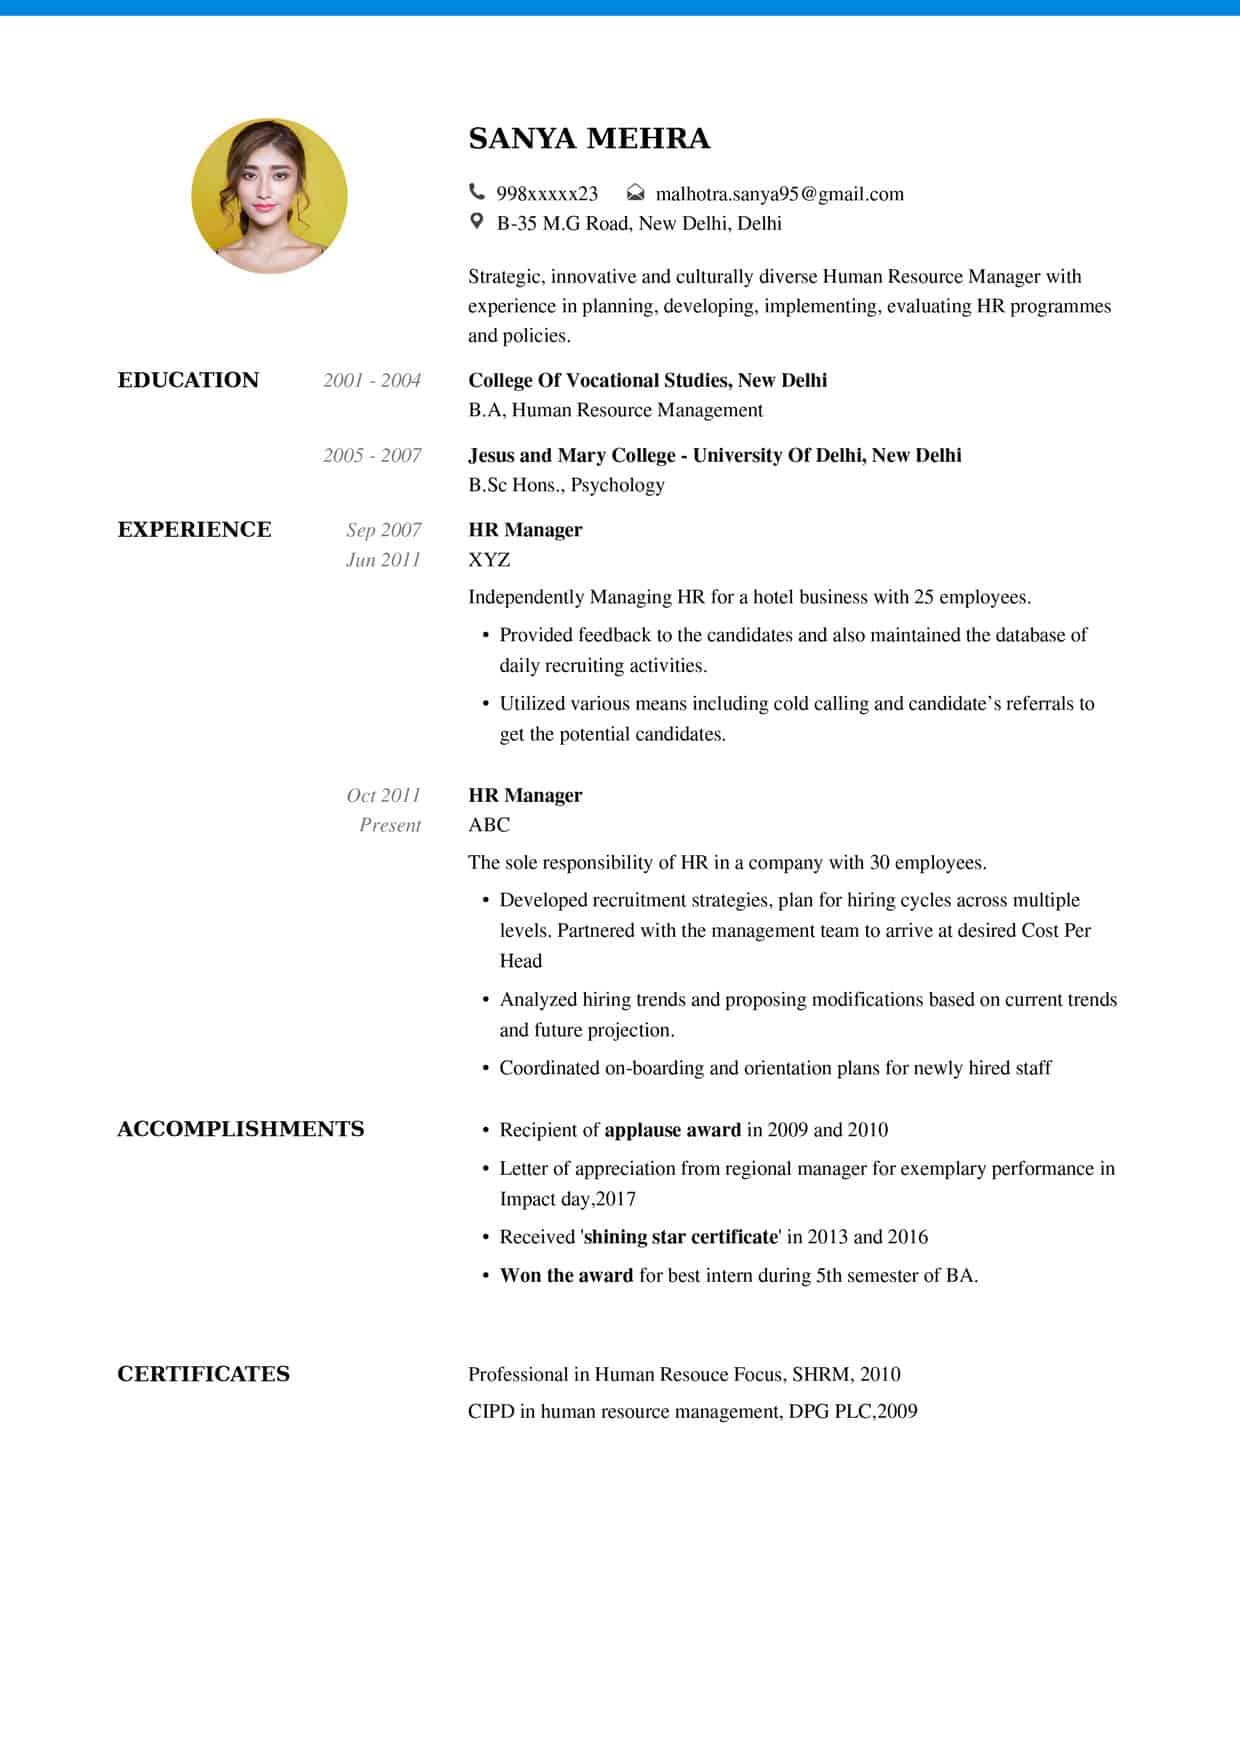 resume 2 - What Should My Resume Look Like